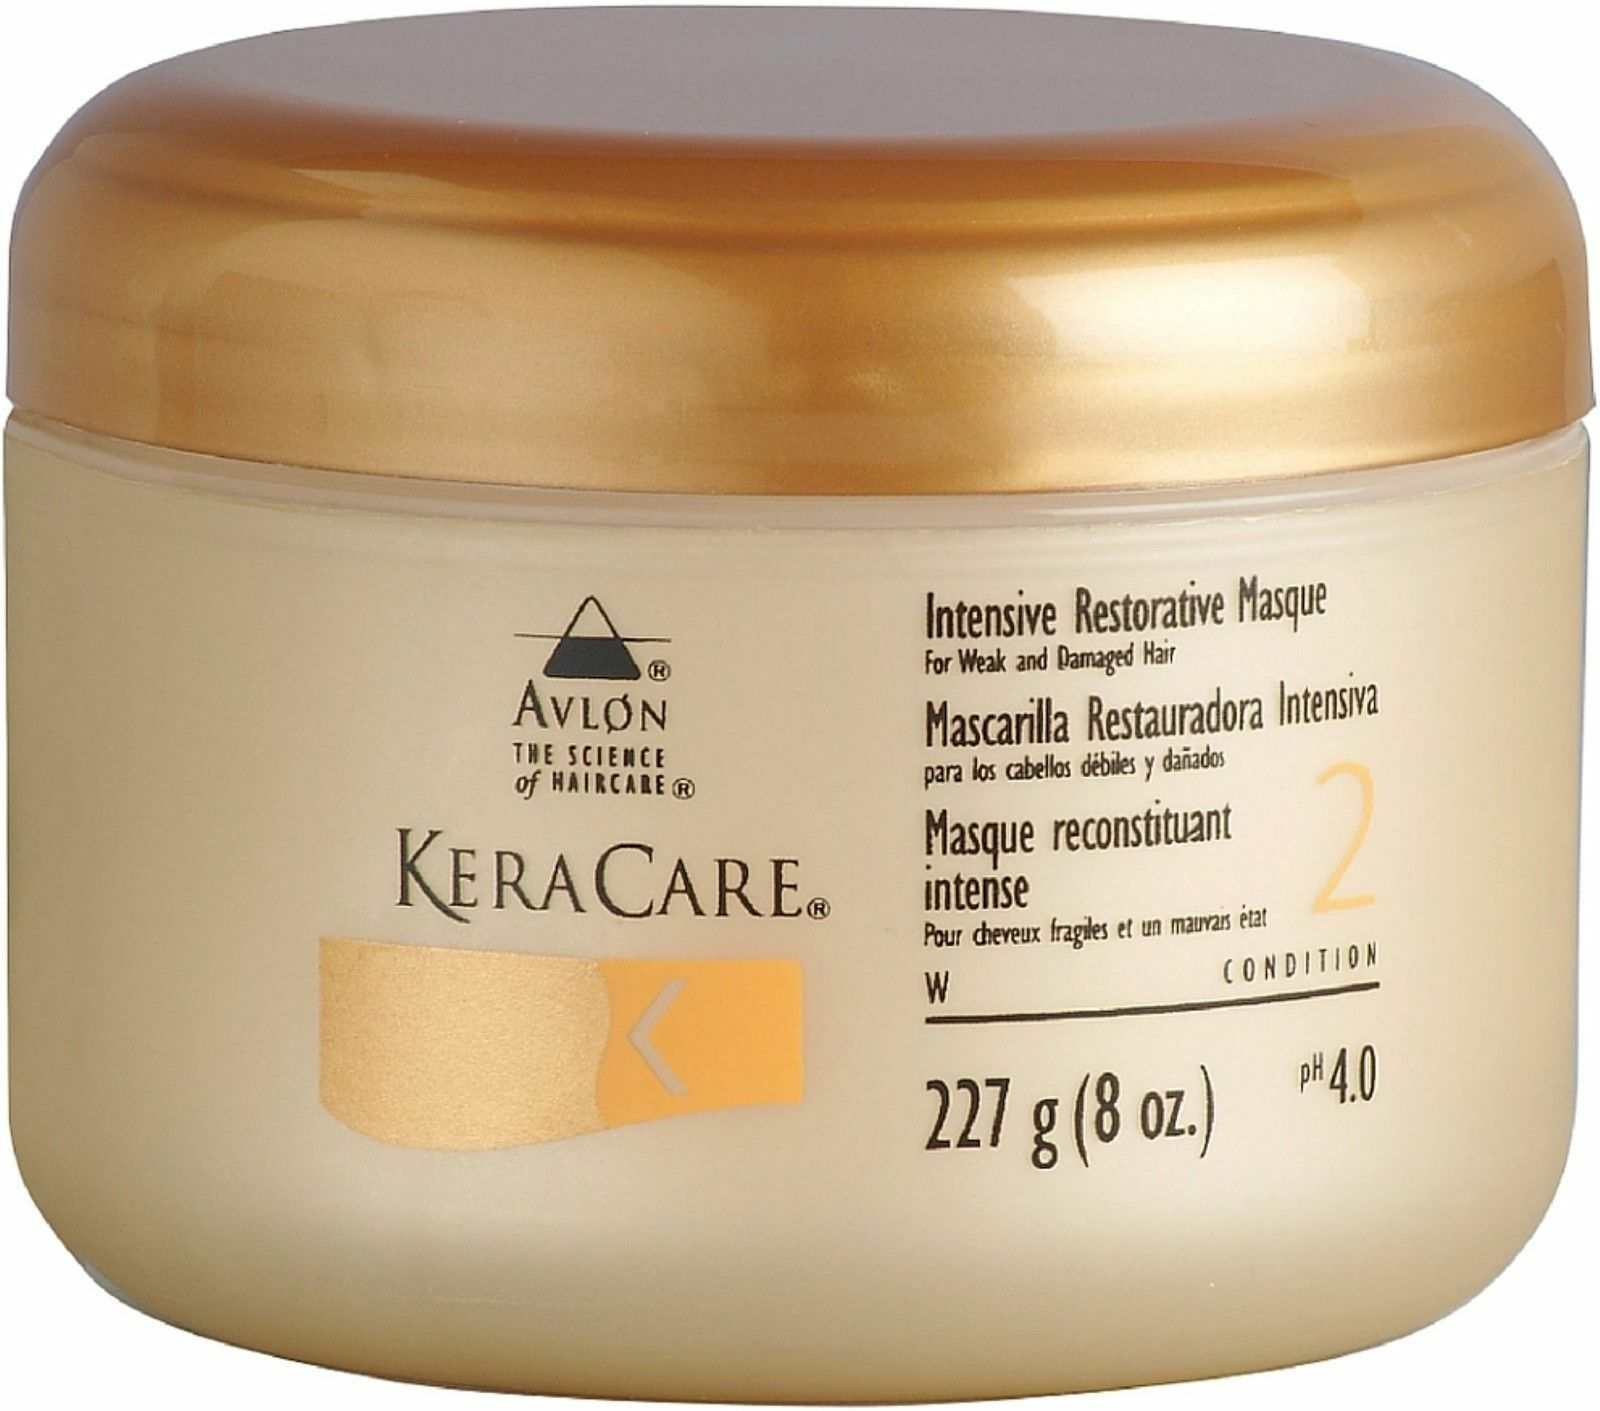 Avlon Keracare Intensive Restorative Masque 8oz Hair Care & Styling